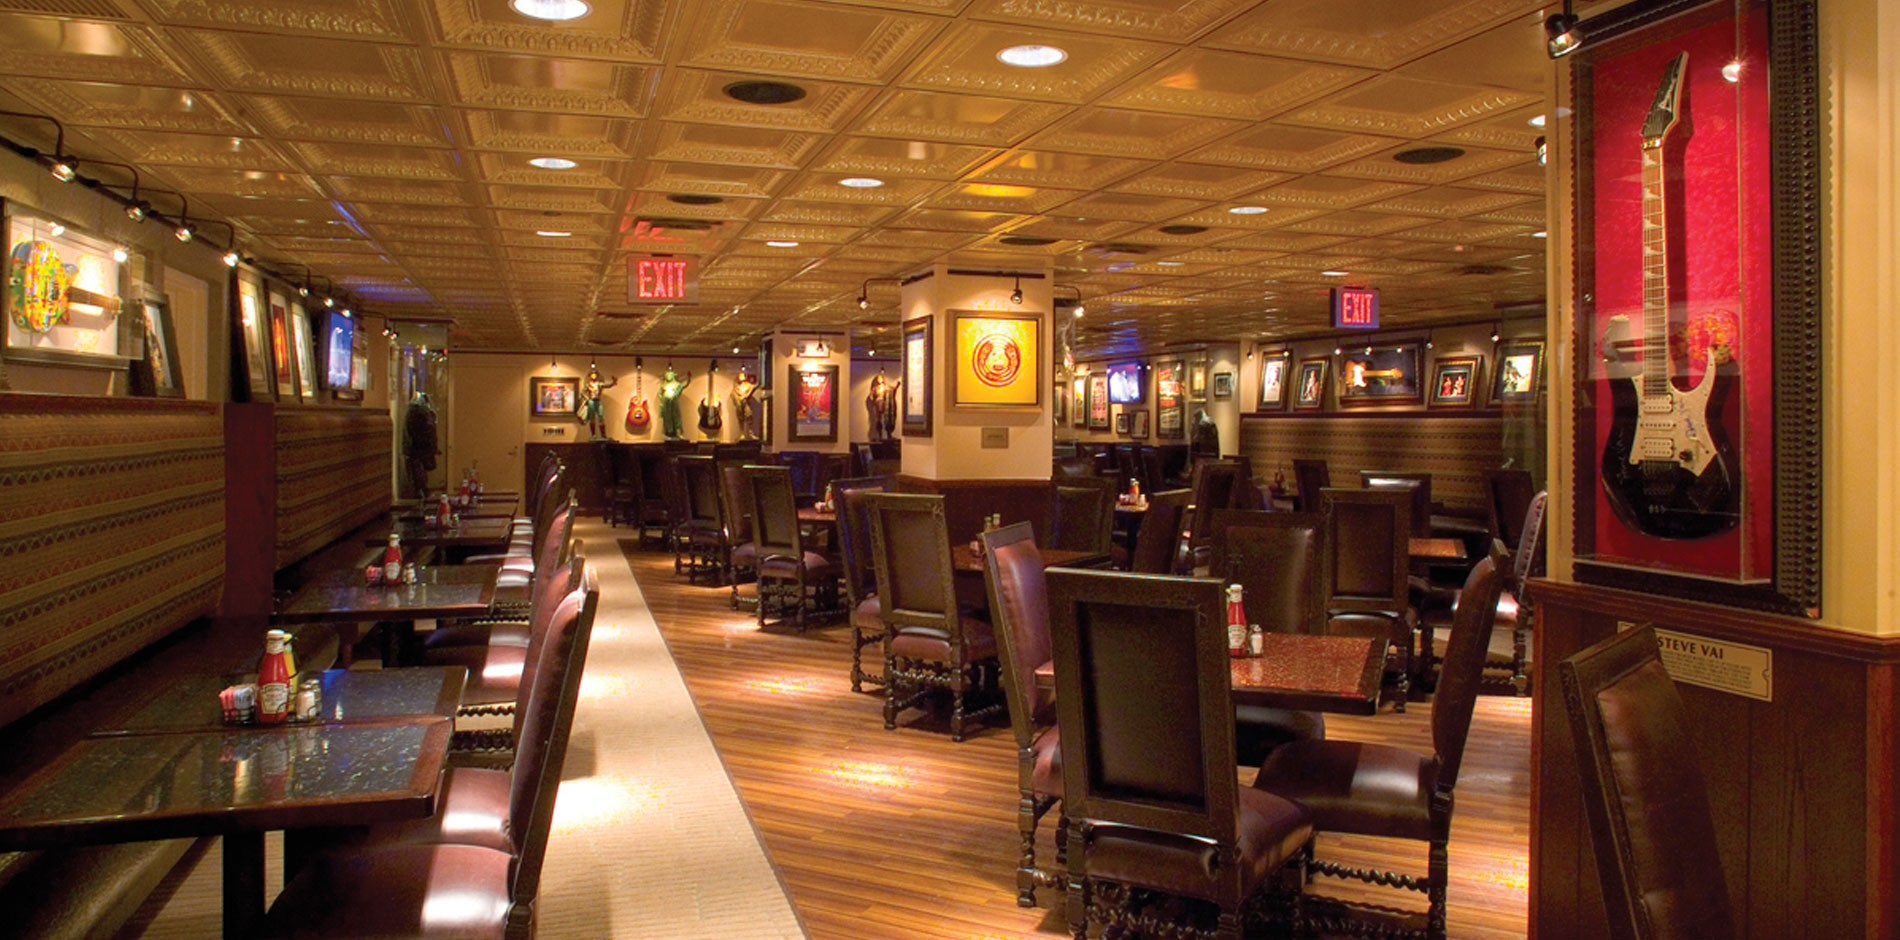 Hard Rock Cafe Construction - New York City Fit-out, Renovation